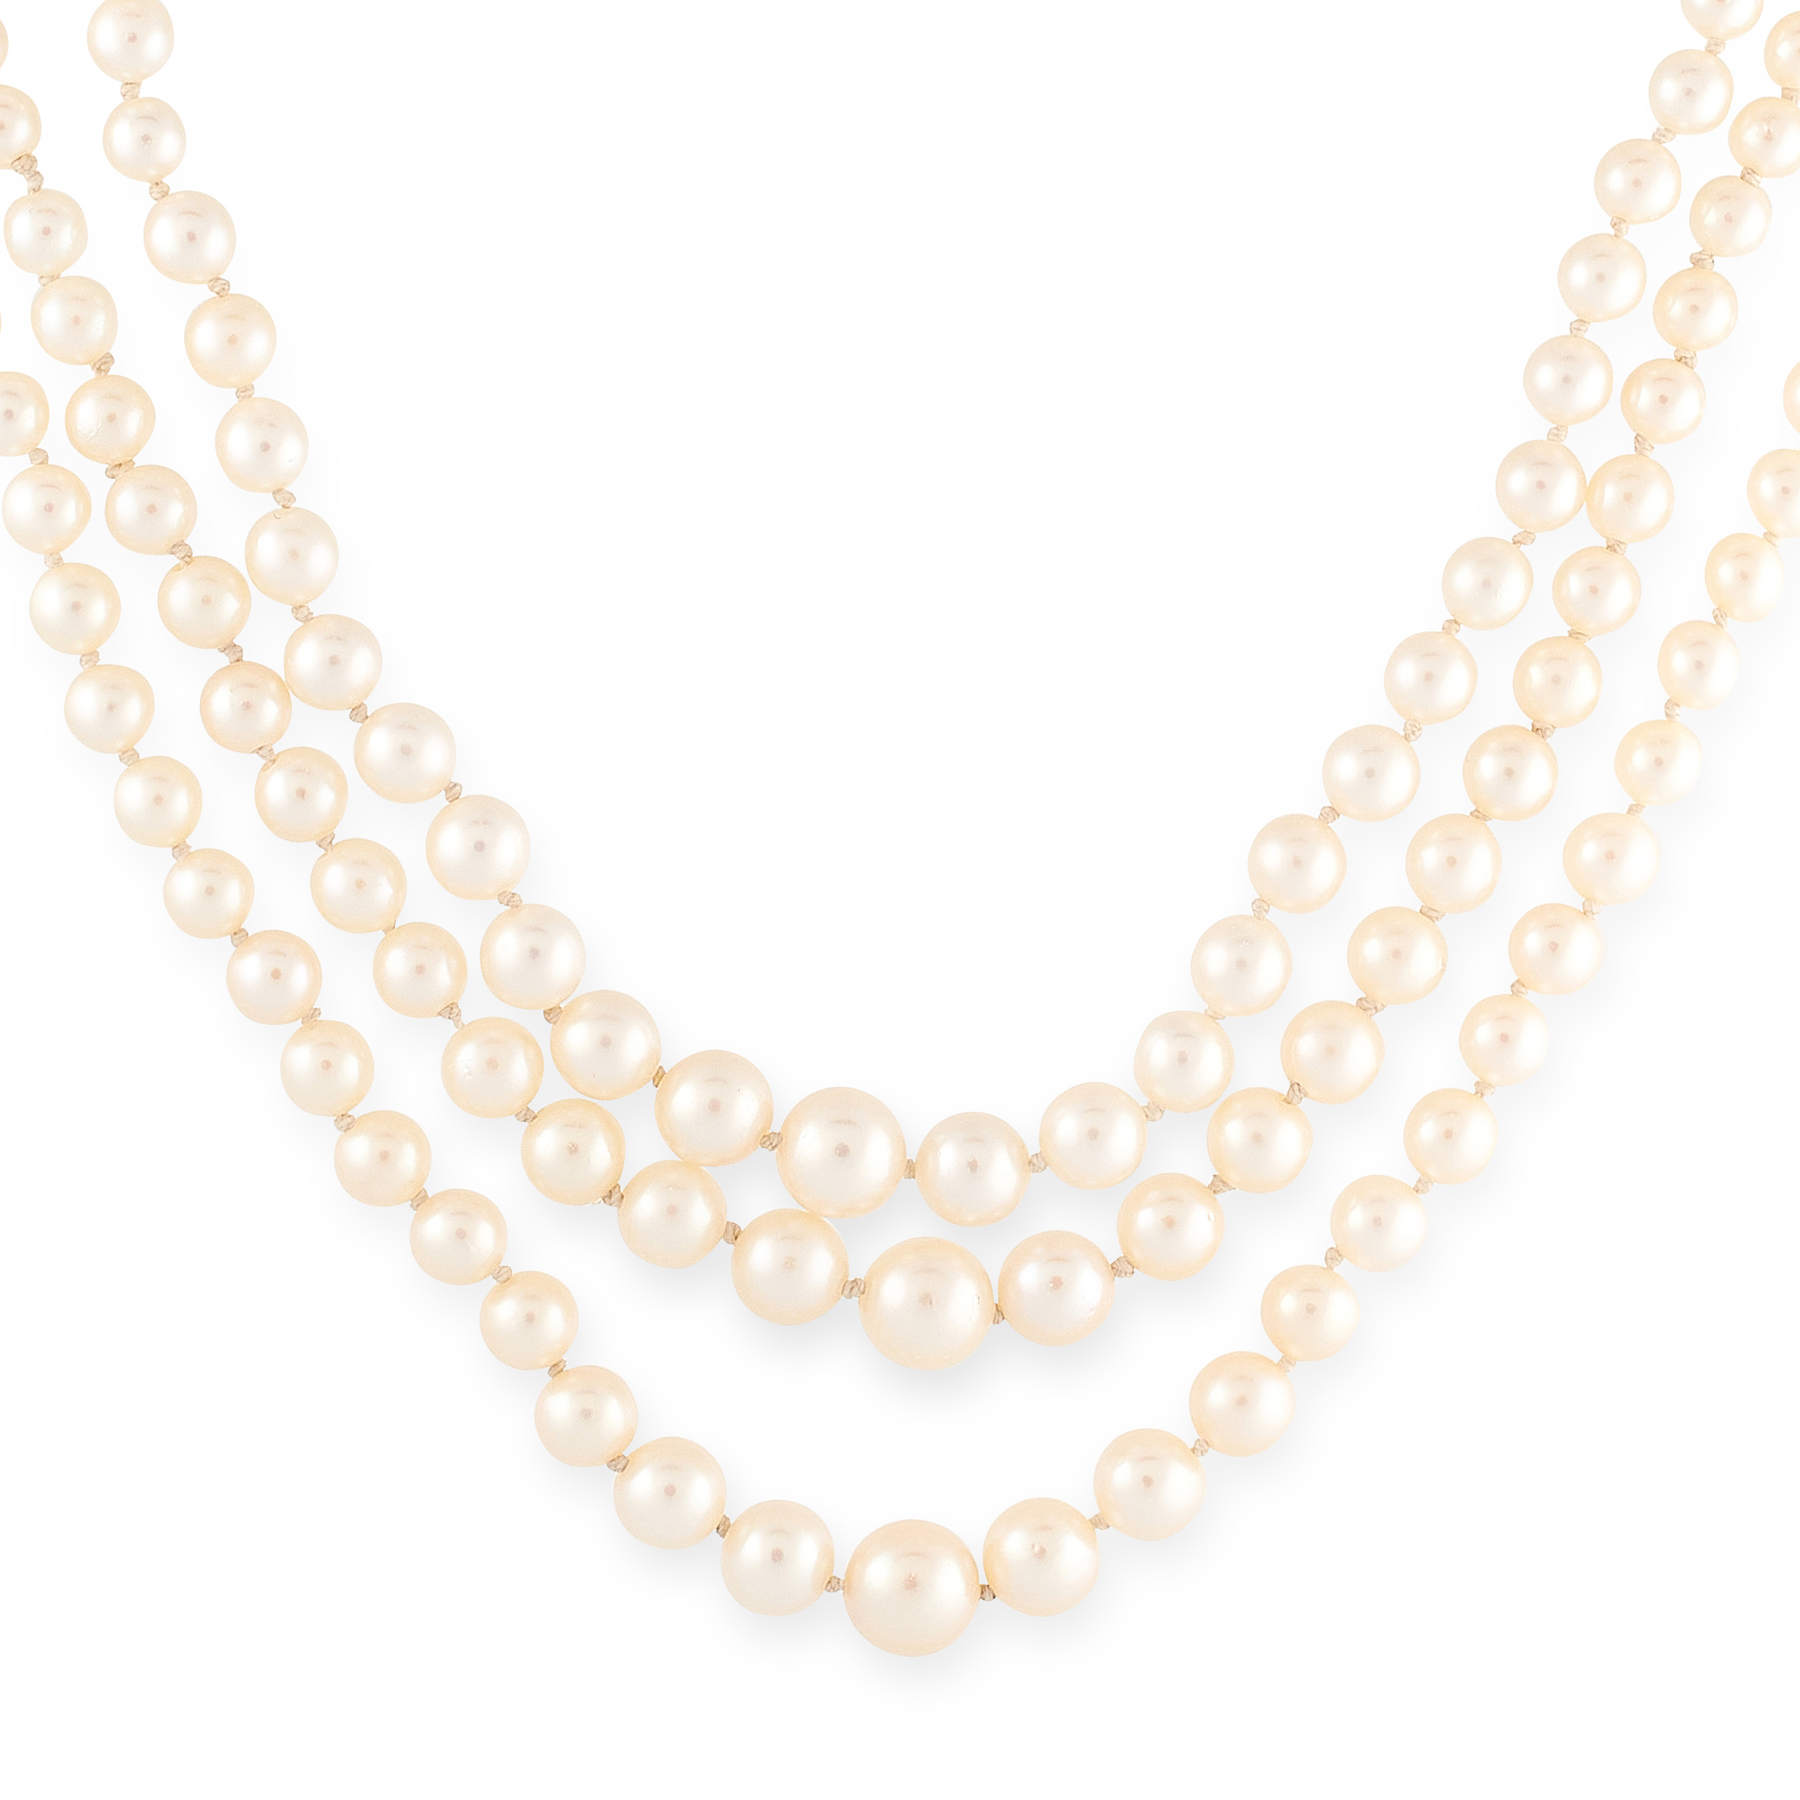 A PEARL AND DIAMOND THREE ROW NECKLACE comprising three rows of one hundred and eighty six graduated